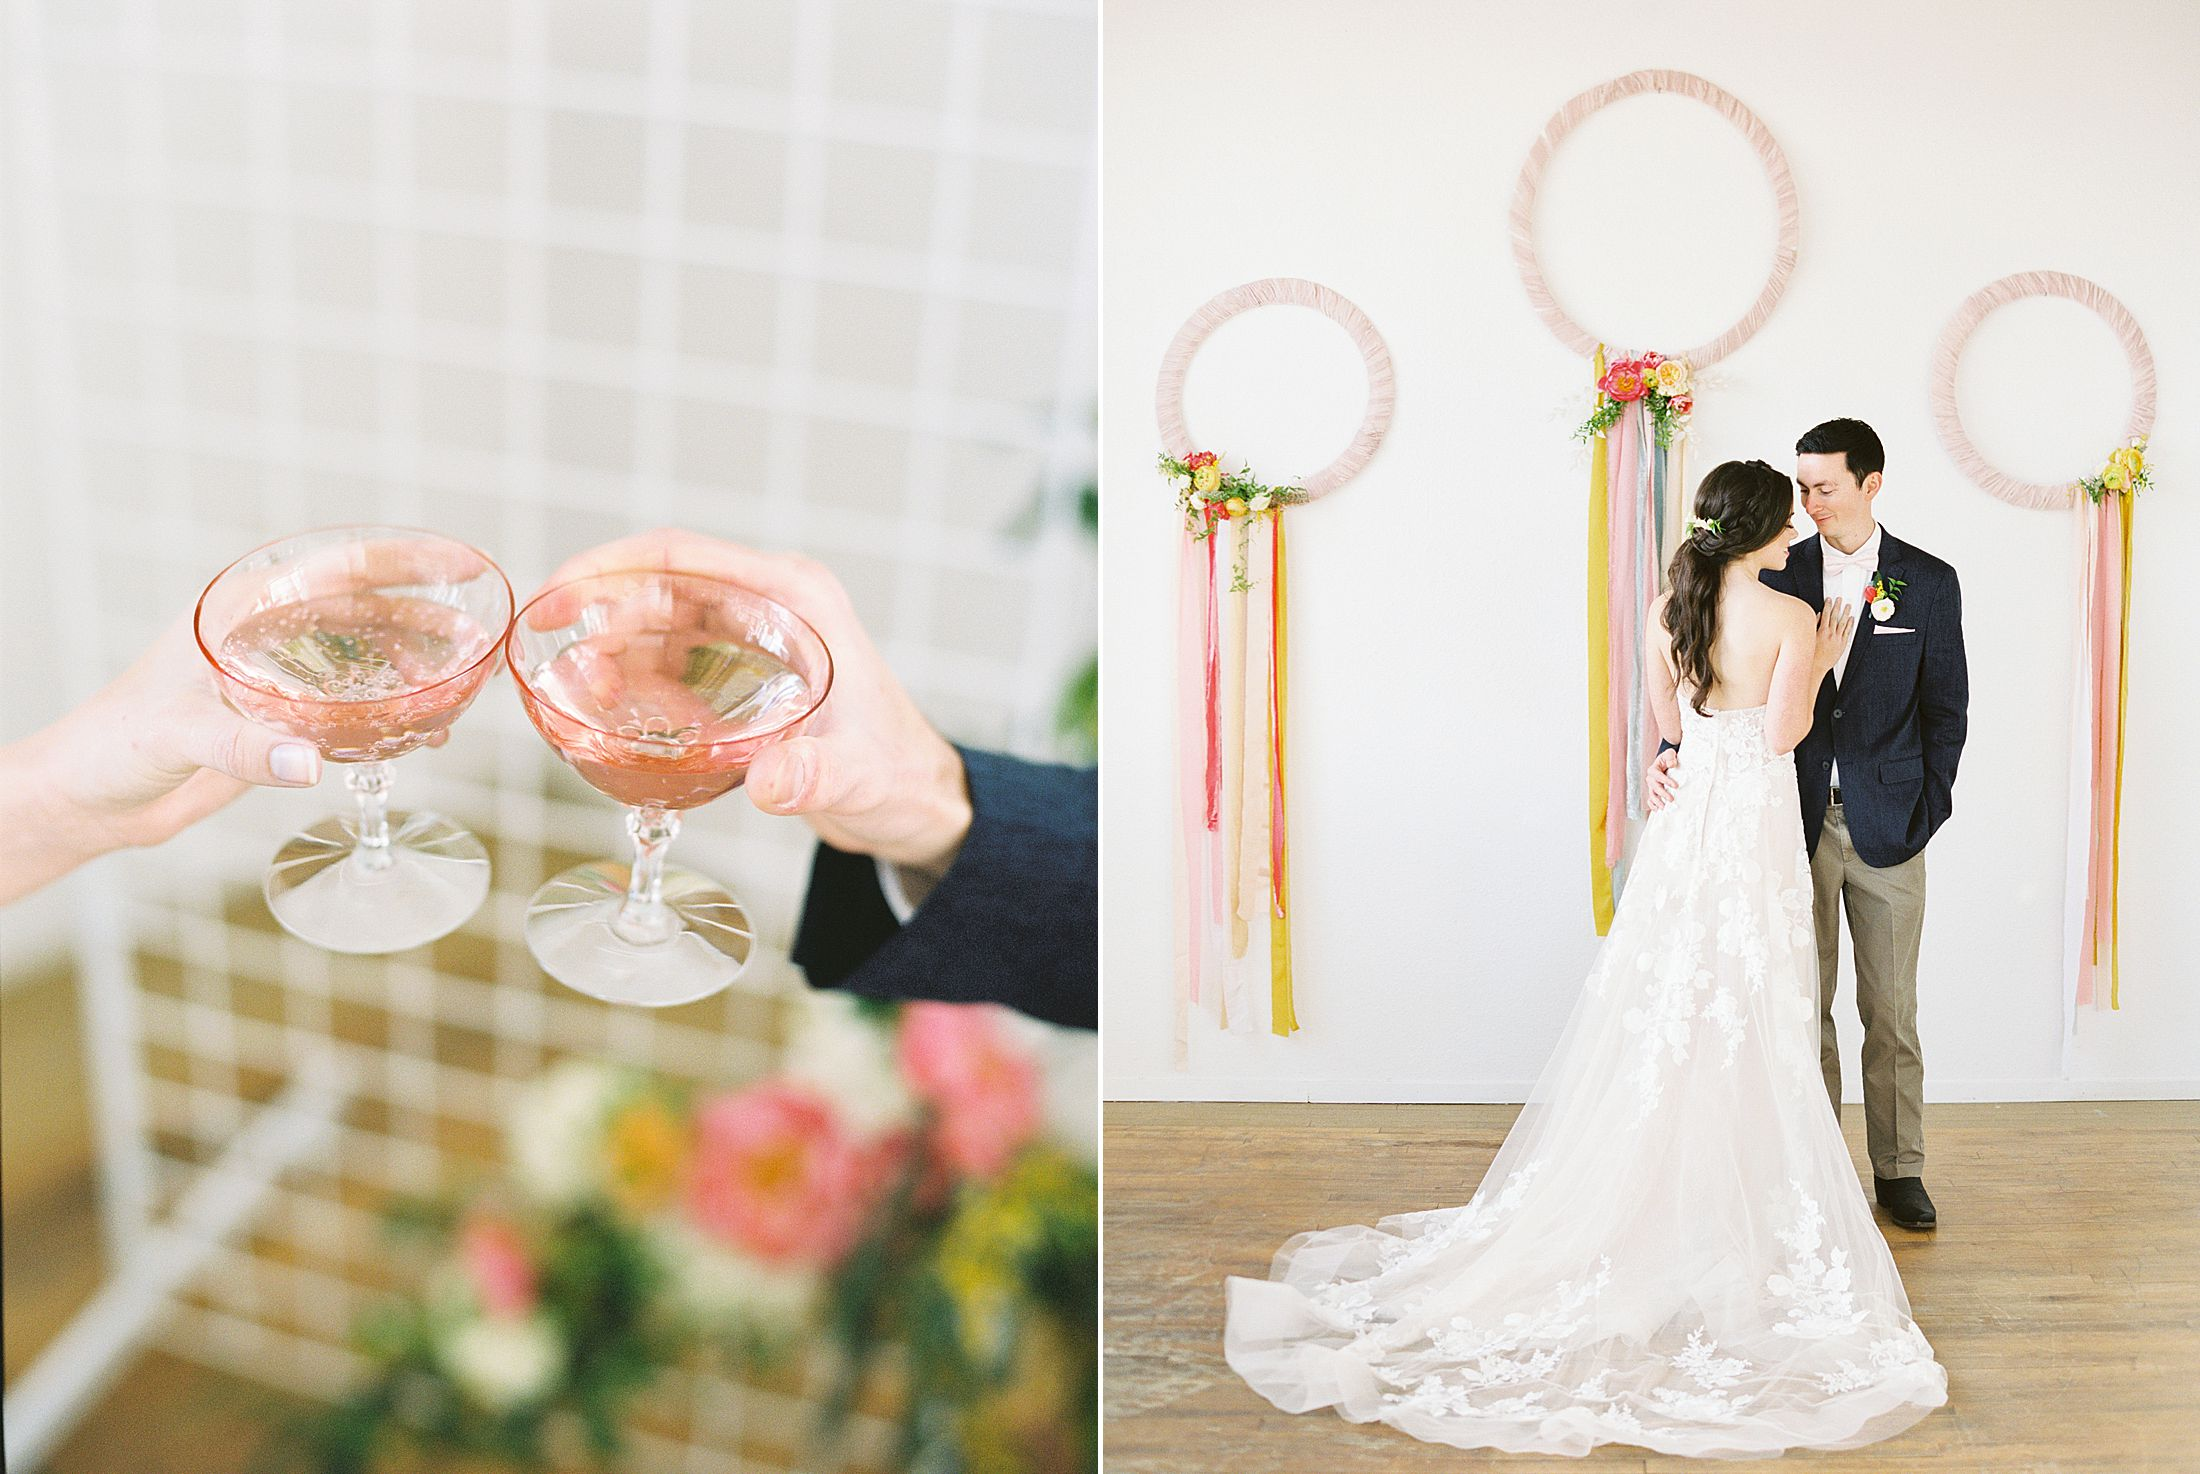 Bay Area Spring Wedding Inspiration - Ashley Baumgartner - Inspired By This - Party Crush Studio and Lens of Lenox Videography - Bay Area Wedding Photography_0006.jpg